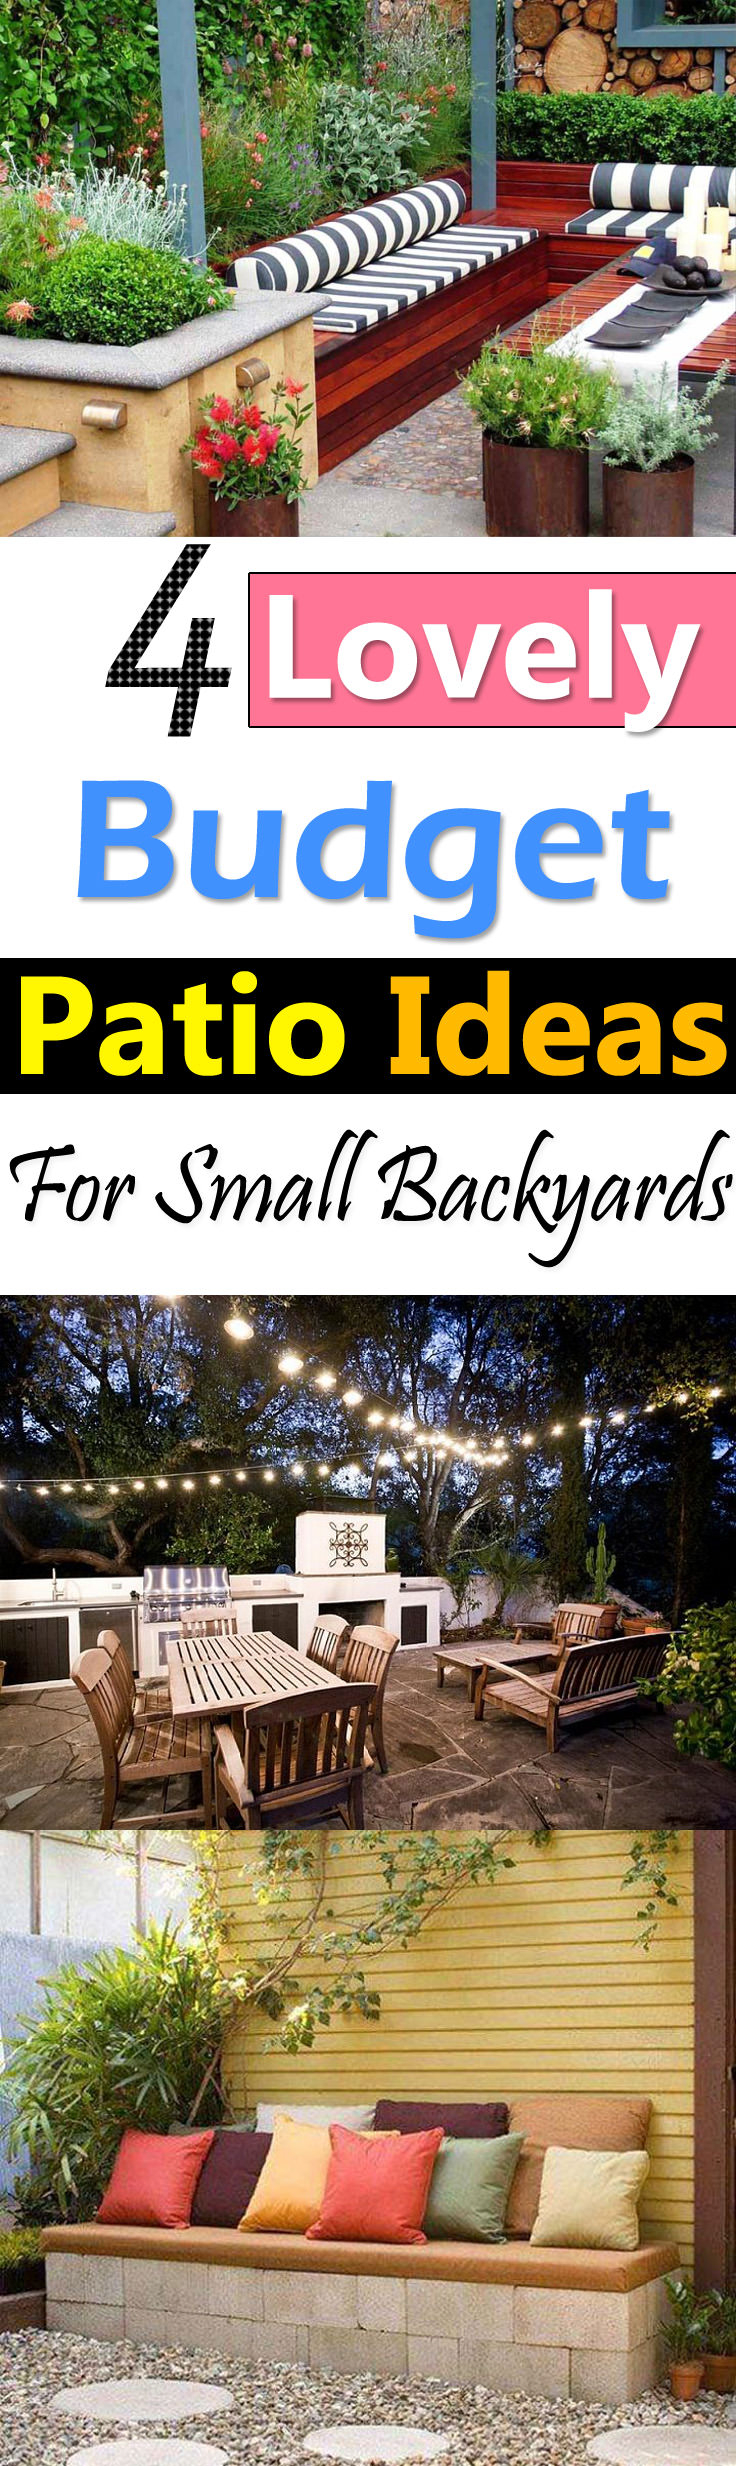 4 Lovely Budget Patio Ideas For Small Backyards Balcony Garden Web pertaining to Backyard Landscape Designs On A Budget